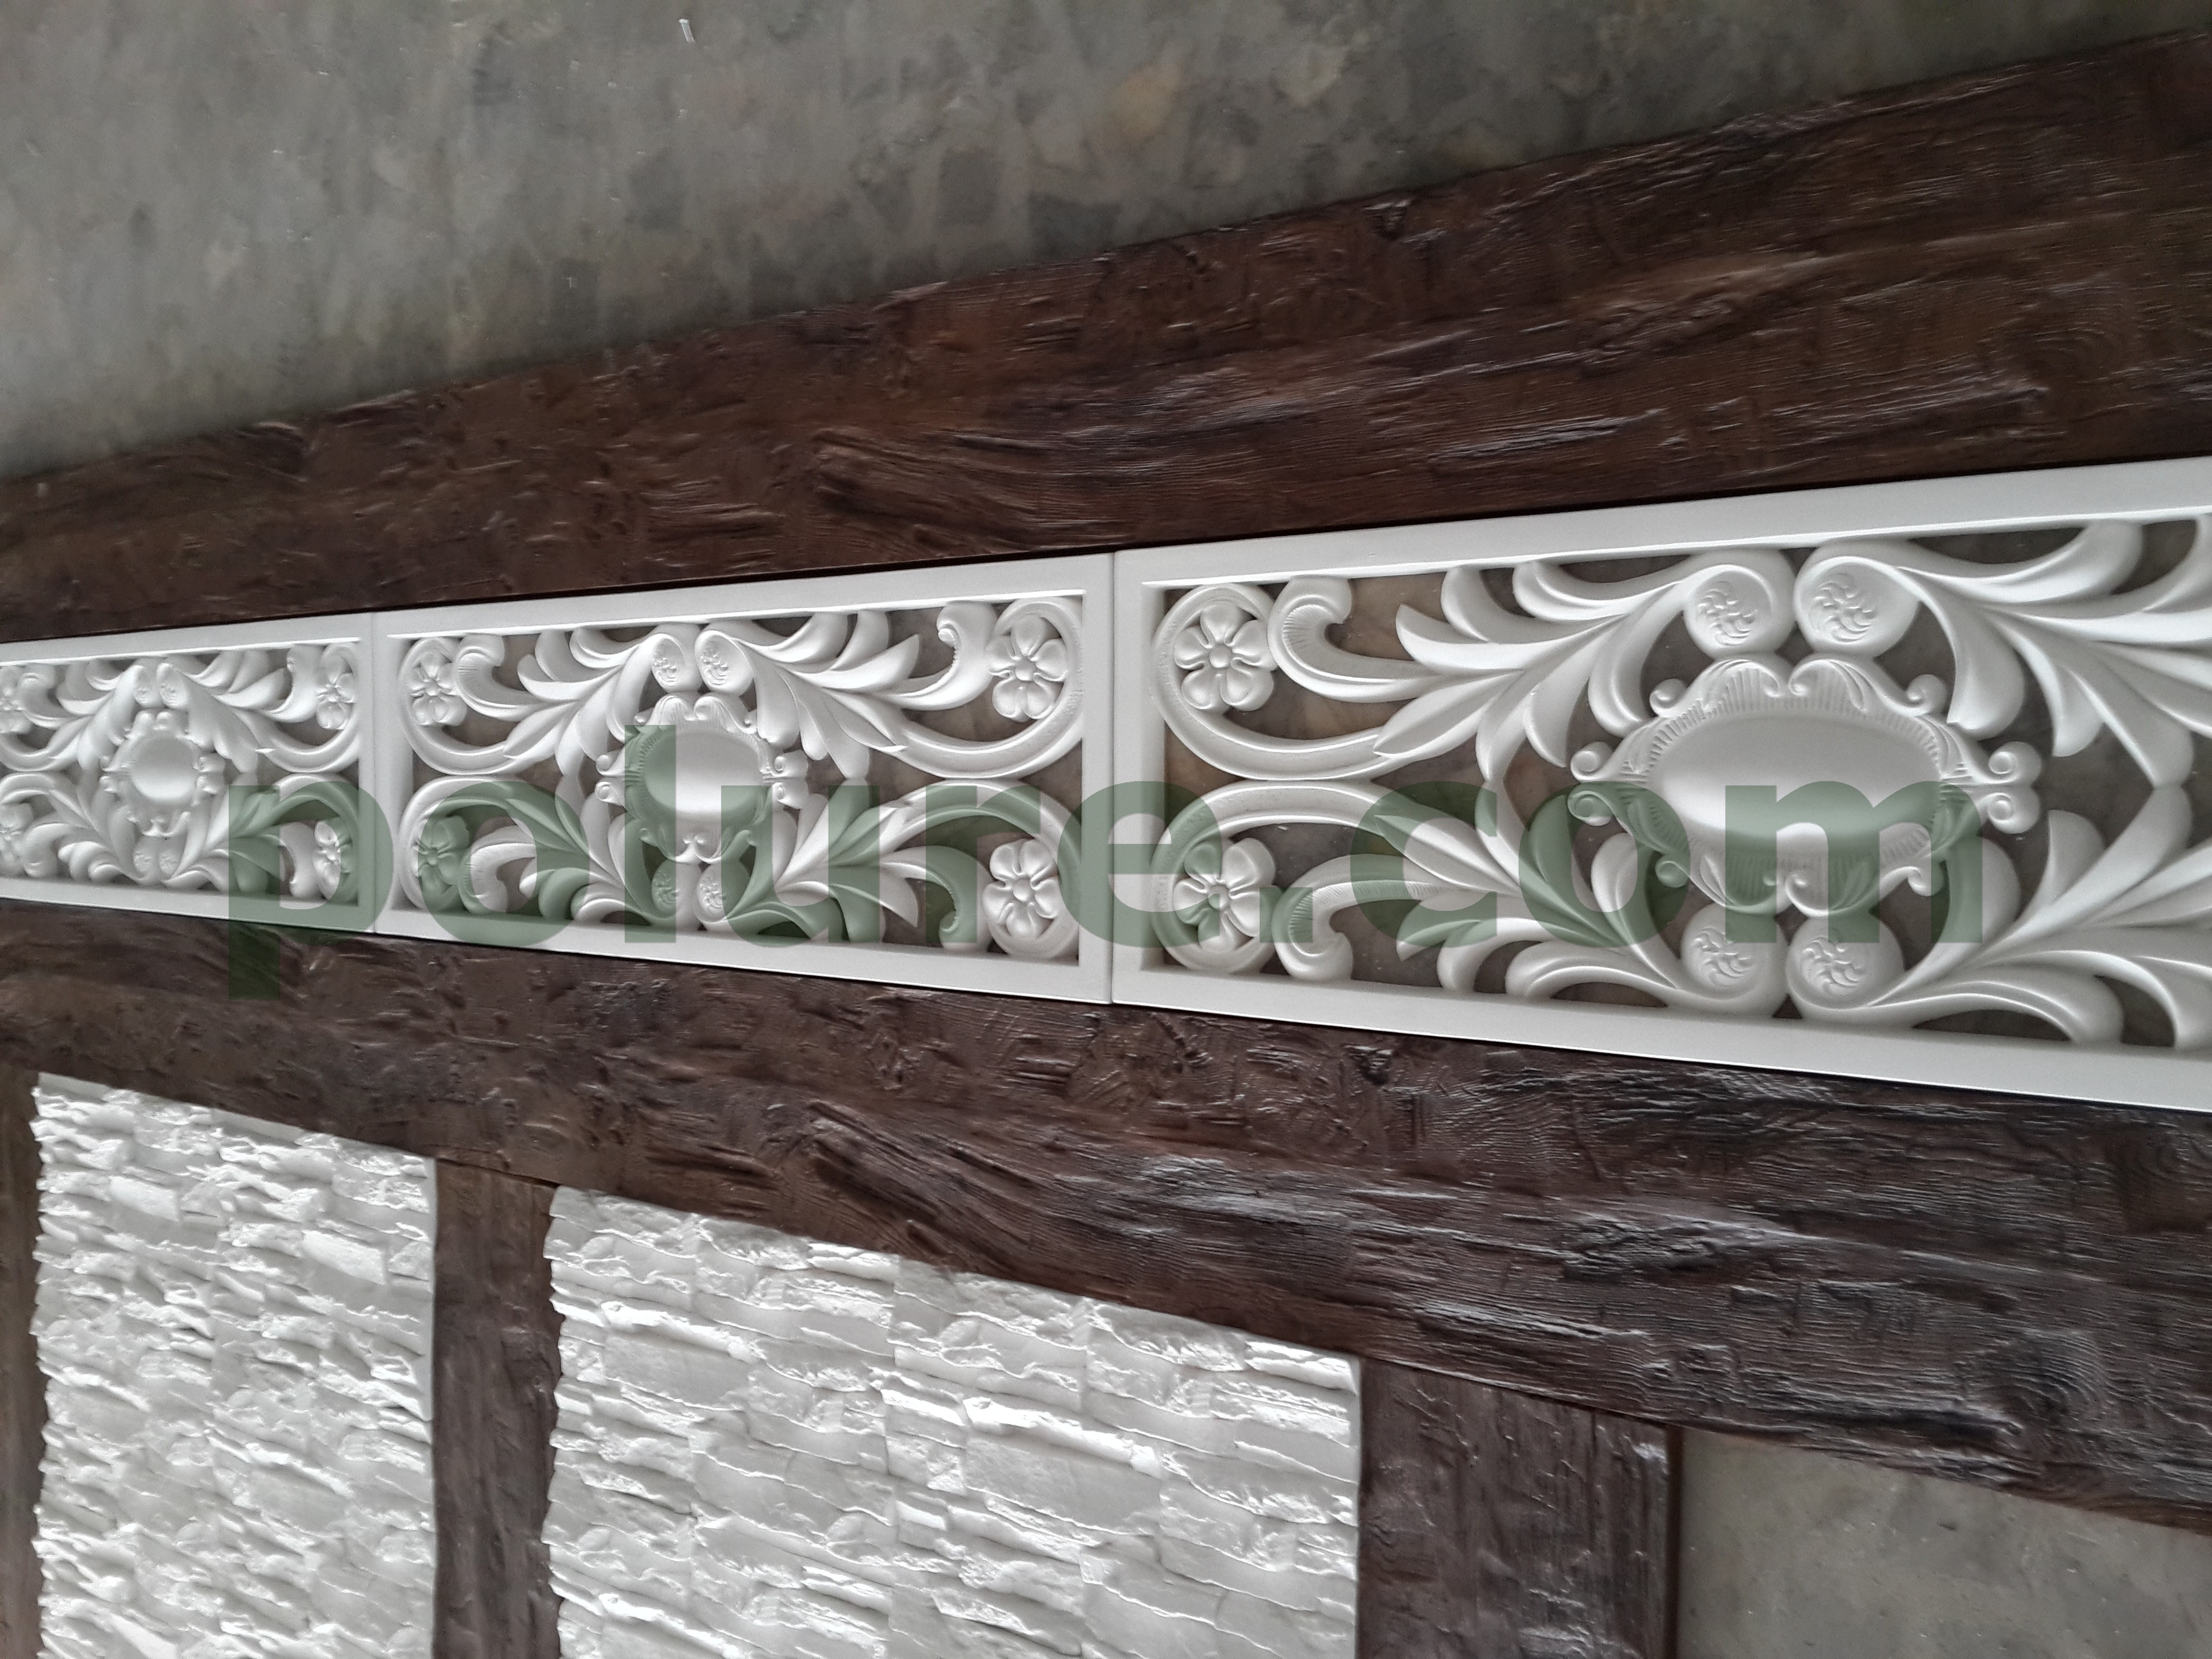 p-8107-polyurethane-decorative-floral-pattern-goes-with-cracking-paint-and-wood-stone-like-imitation-pu-moulding-separator-panel-price (19)